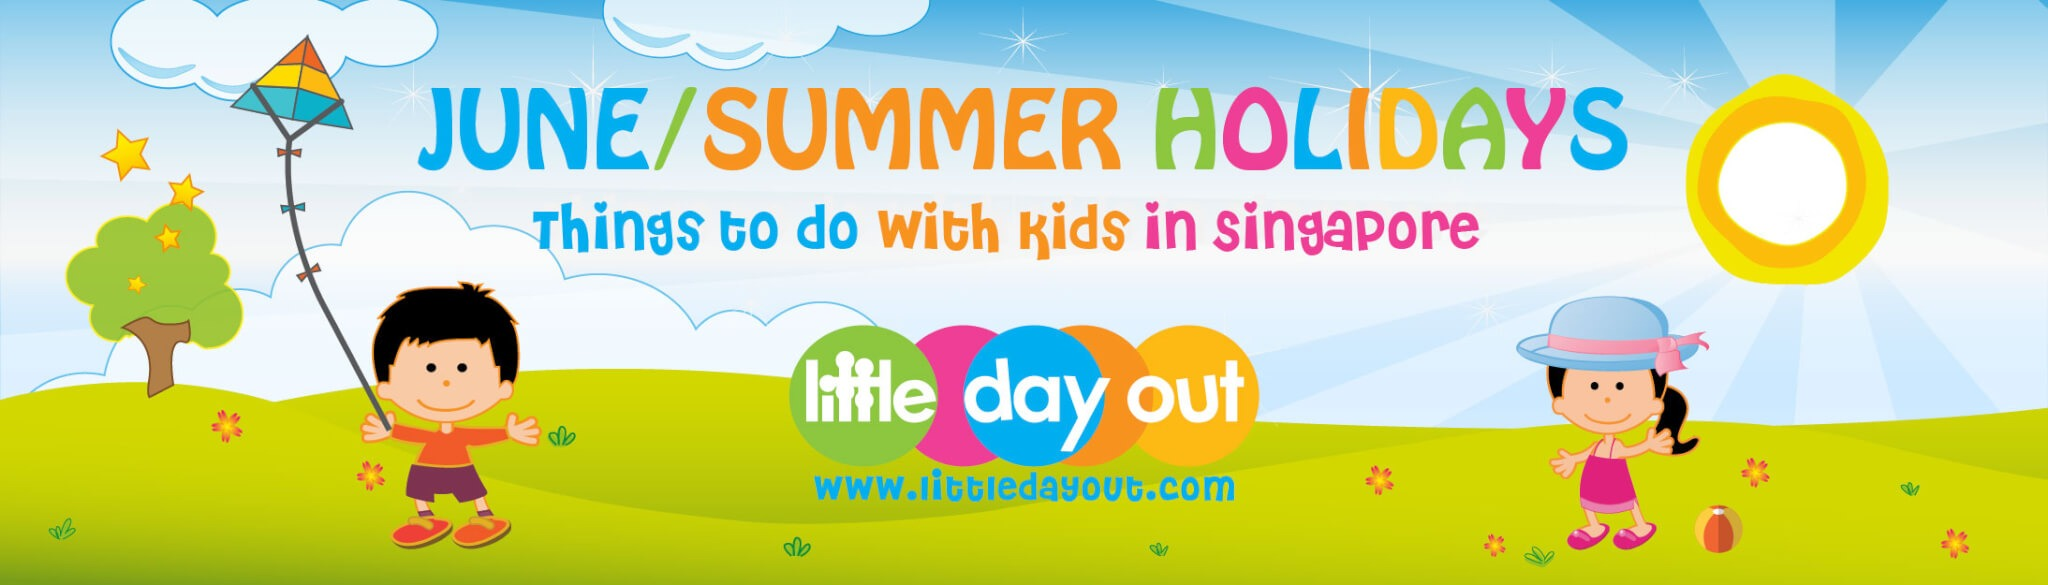 June school holidays for kids